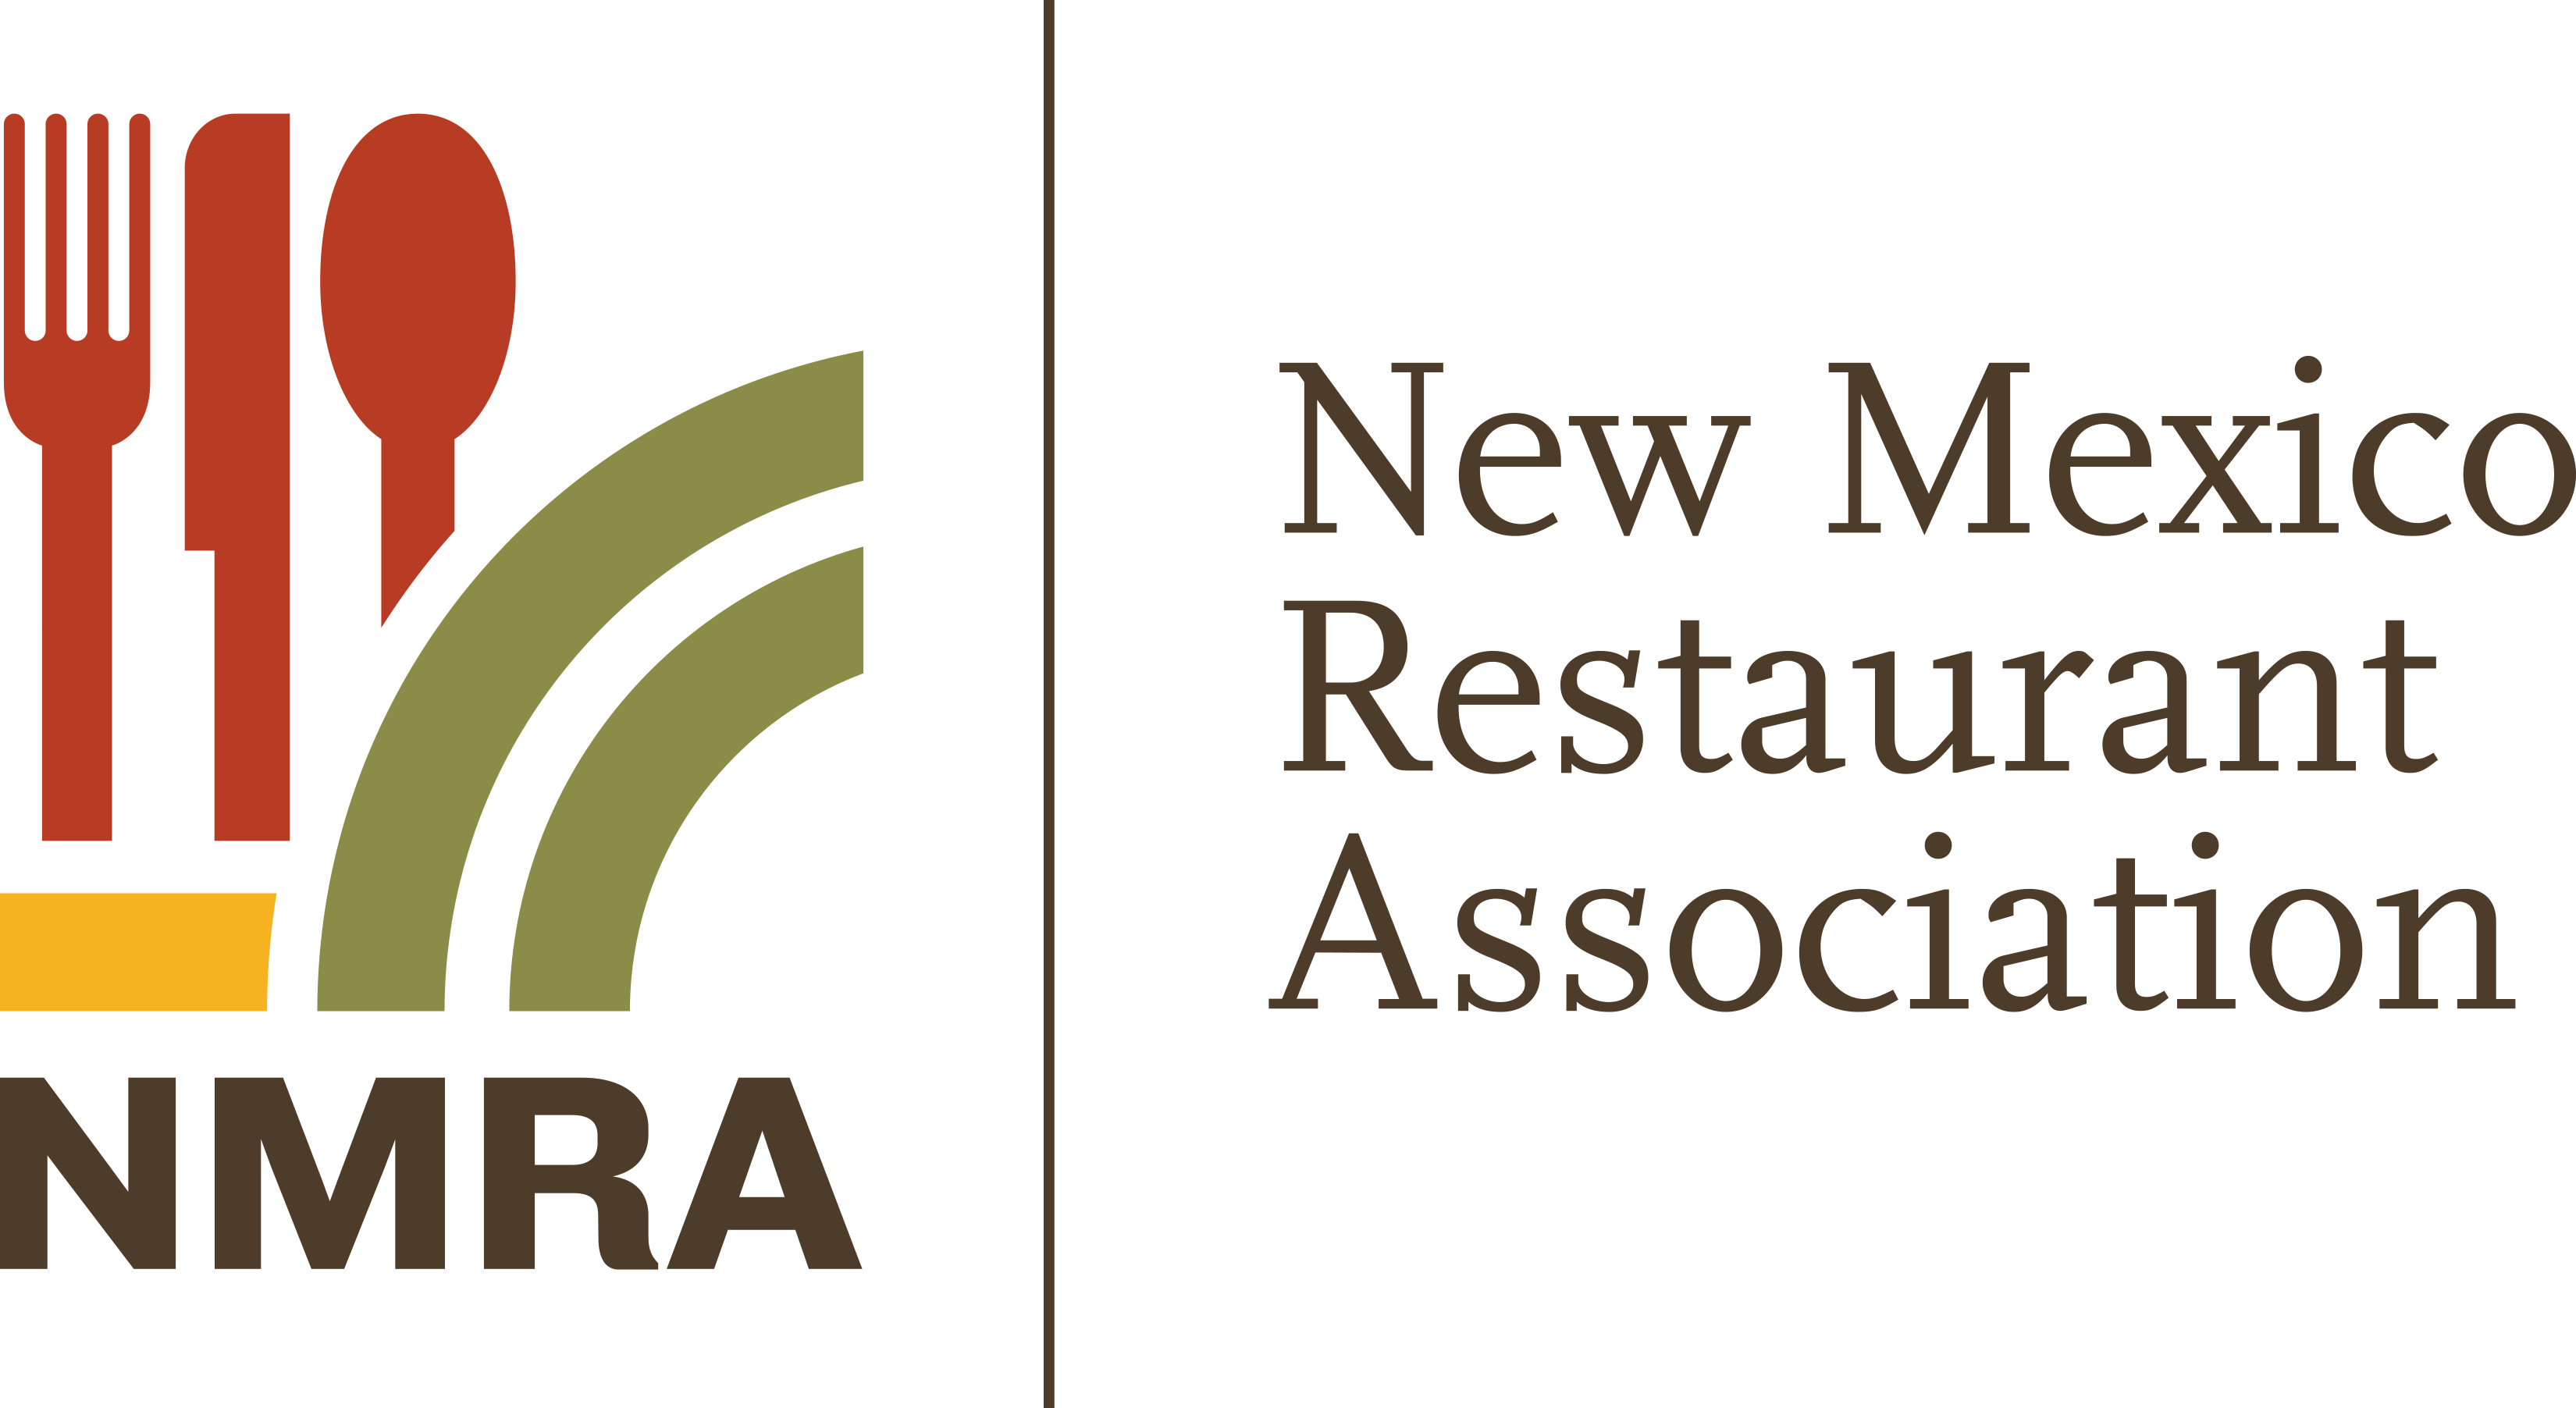 Food Safety Certification - NMRA